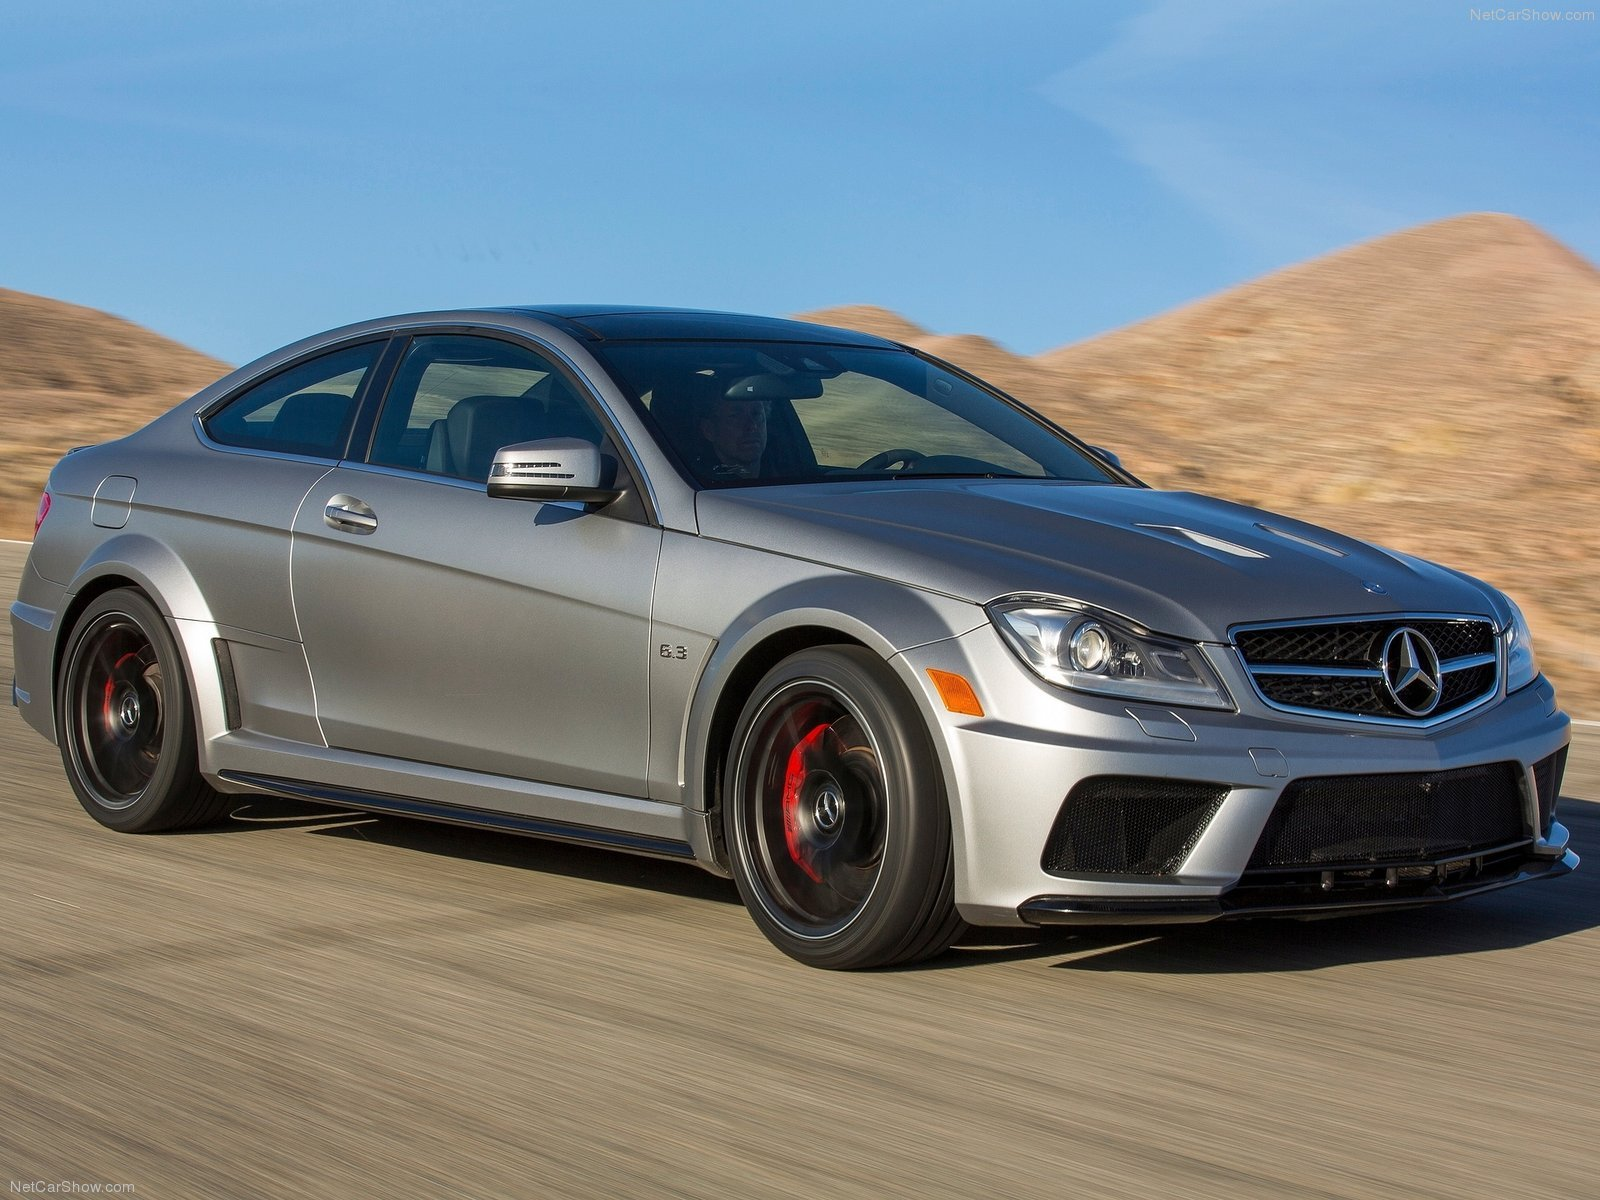 Mercedes benz c63 amg coupe black series cars 2012 for Mercedes benz c63 2012